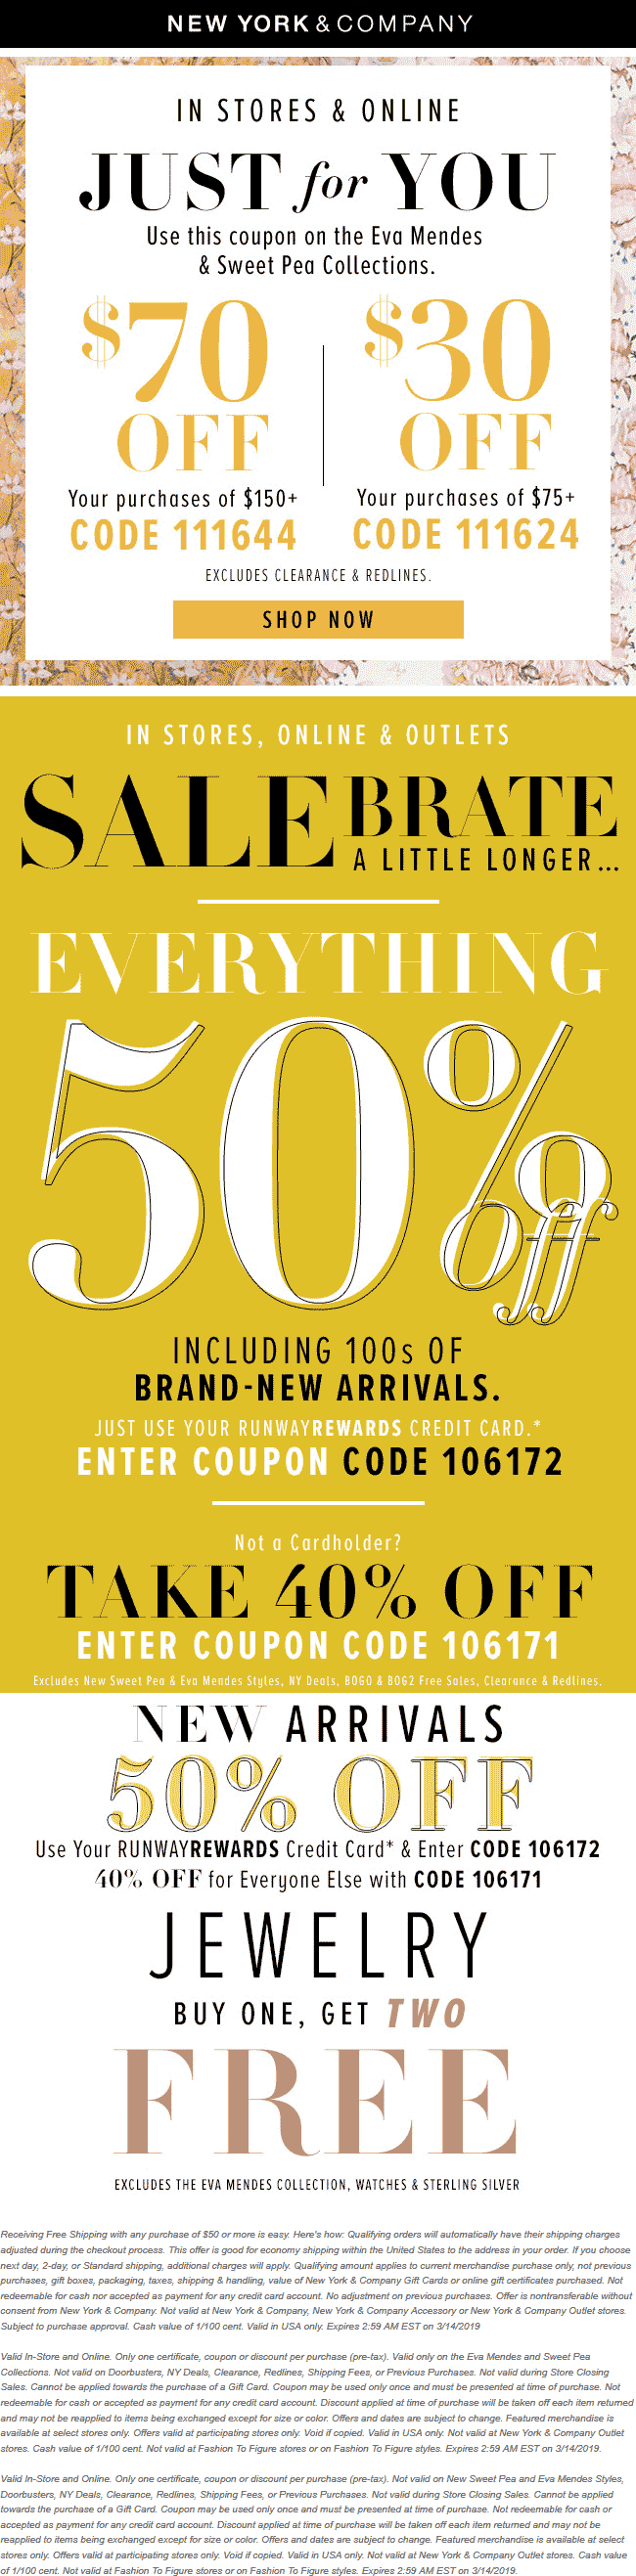 NewYork&Company.com Promo Coupon $30 off $75 & more today at New York & Company, or online via promo code 111624